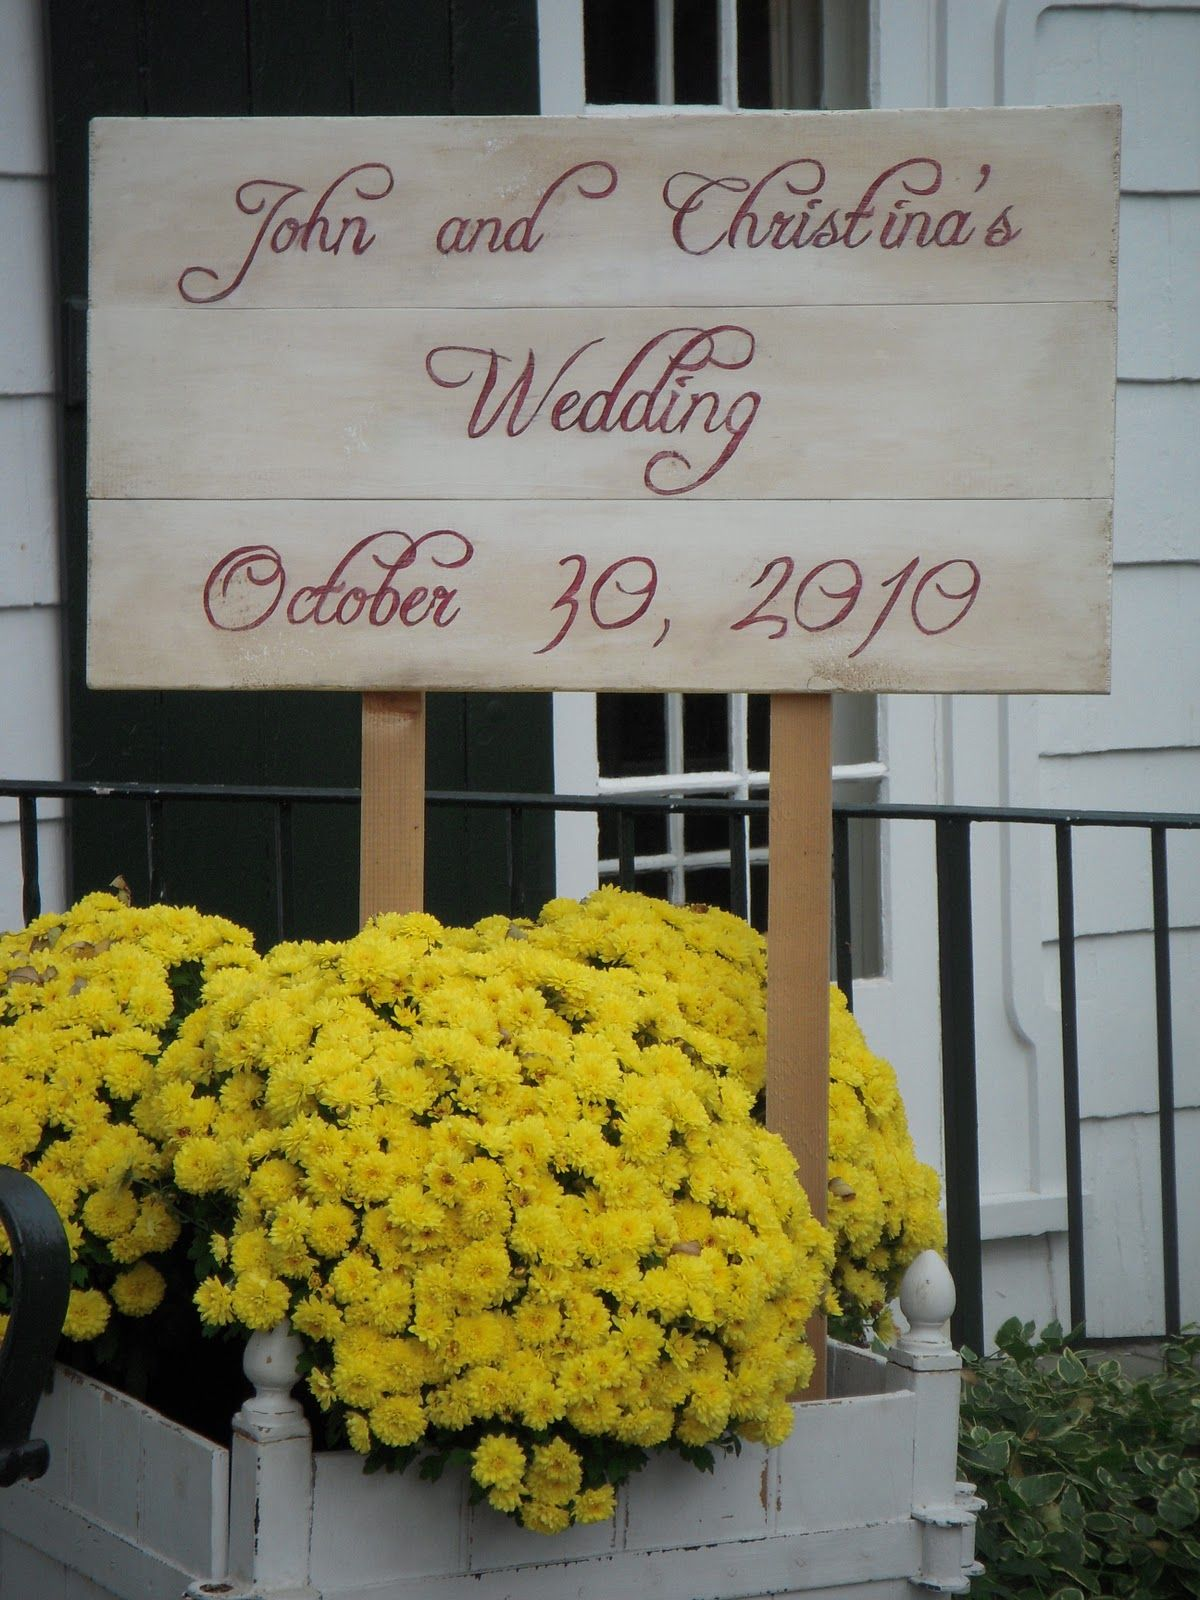 I would love this for the wedding and to have as a keepsake/wall art ...